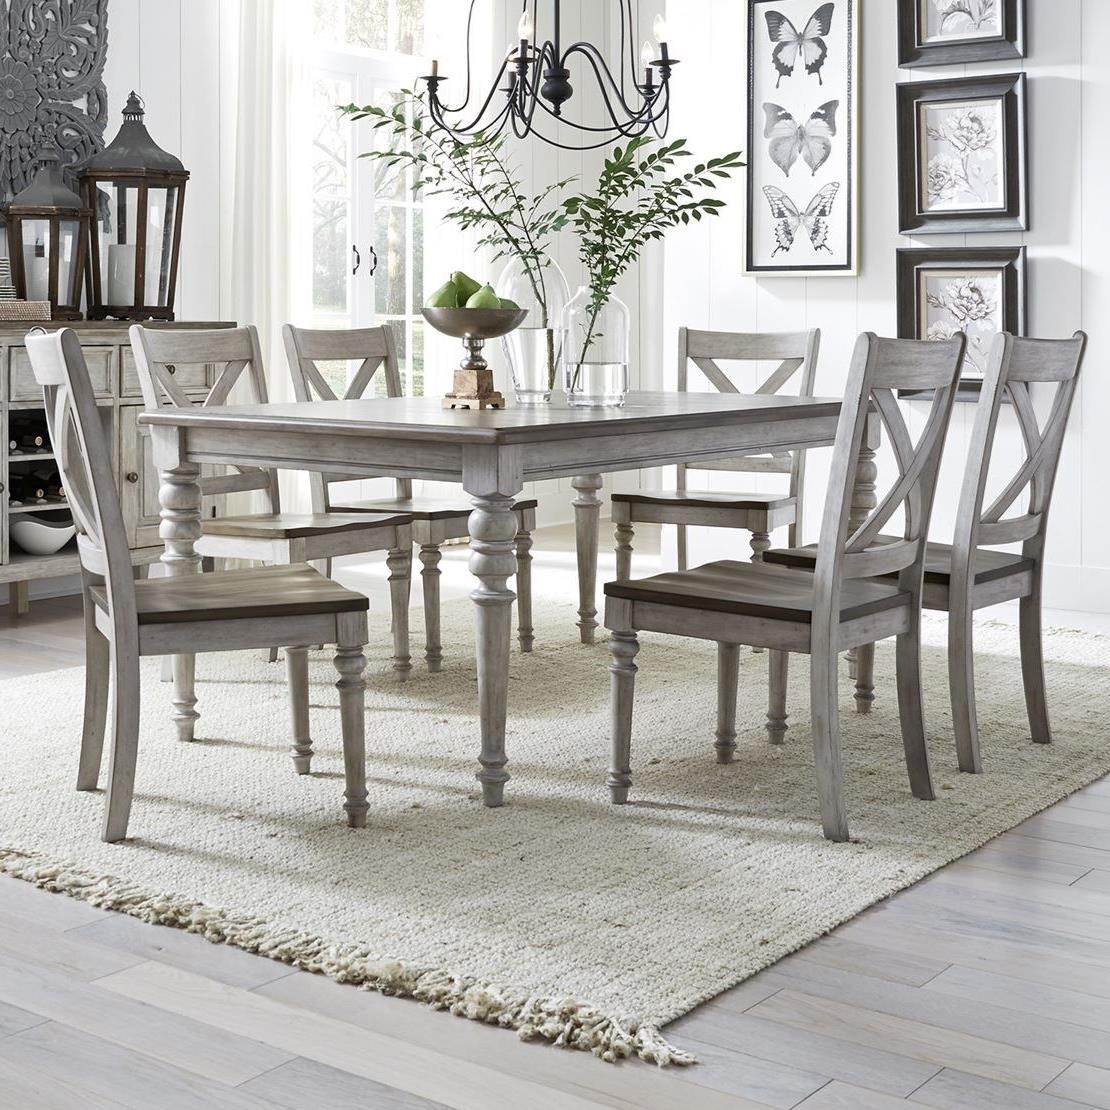 Cottage Lane 7-Piece Rectangular Table Set by Libby at Walker's Furniture